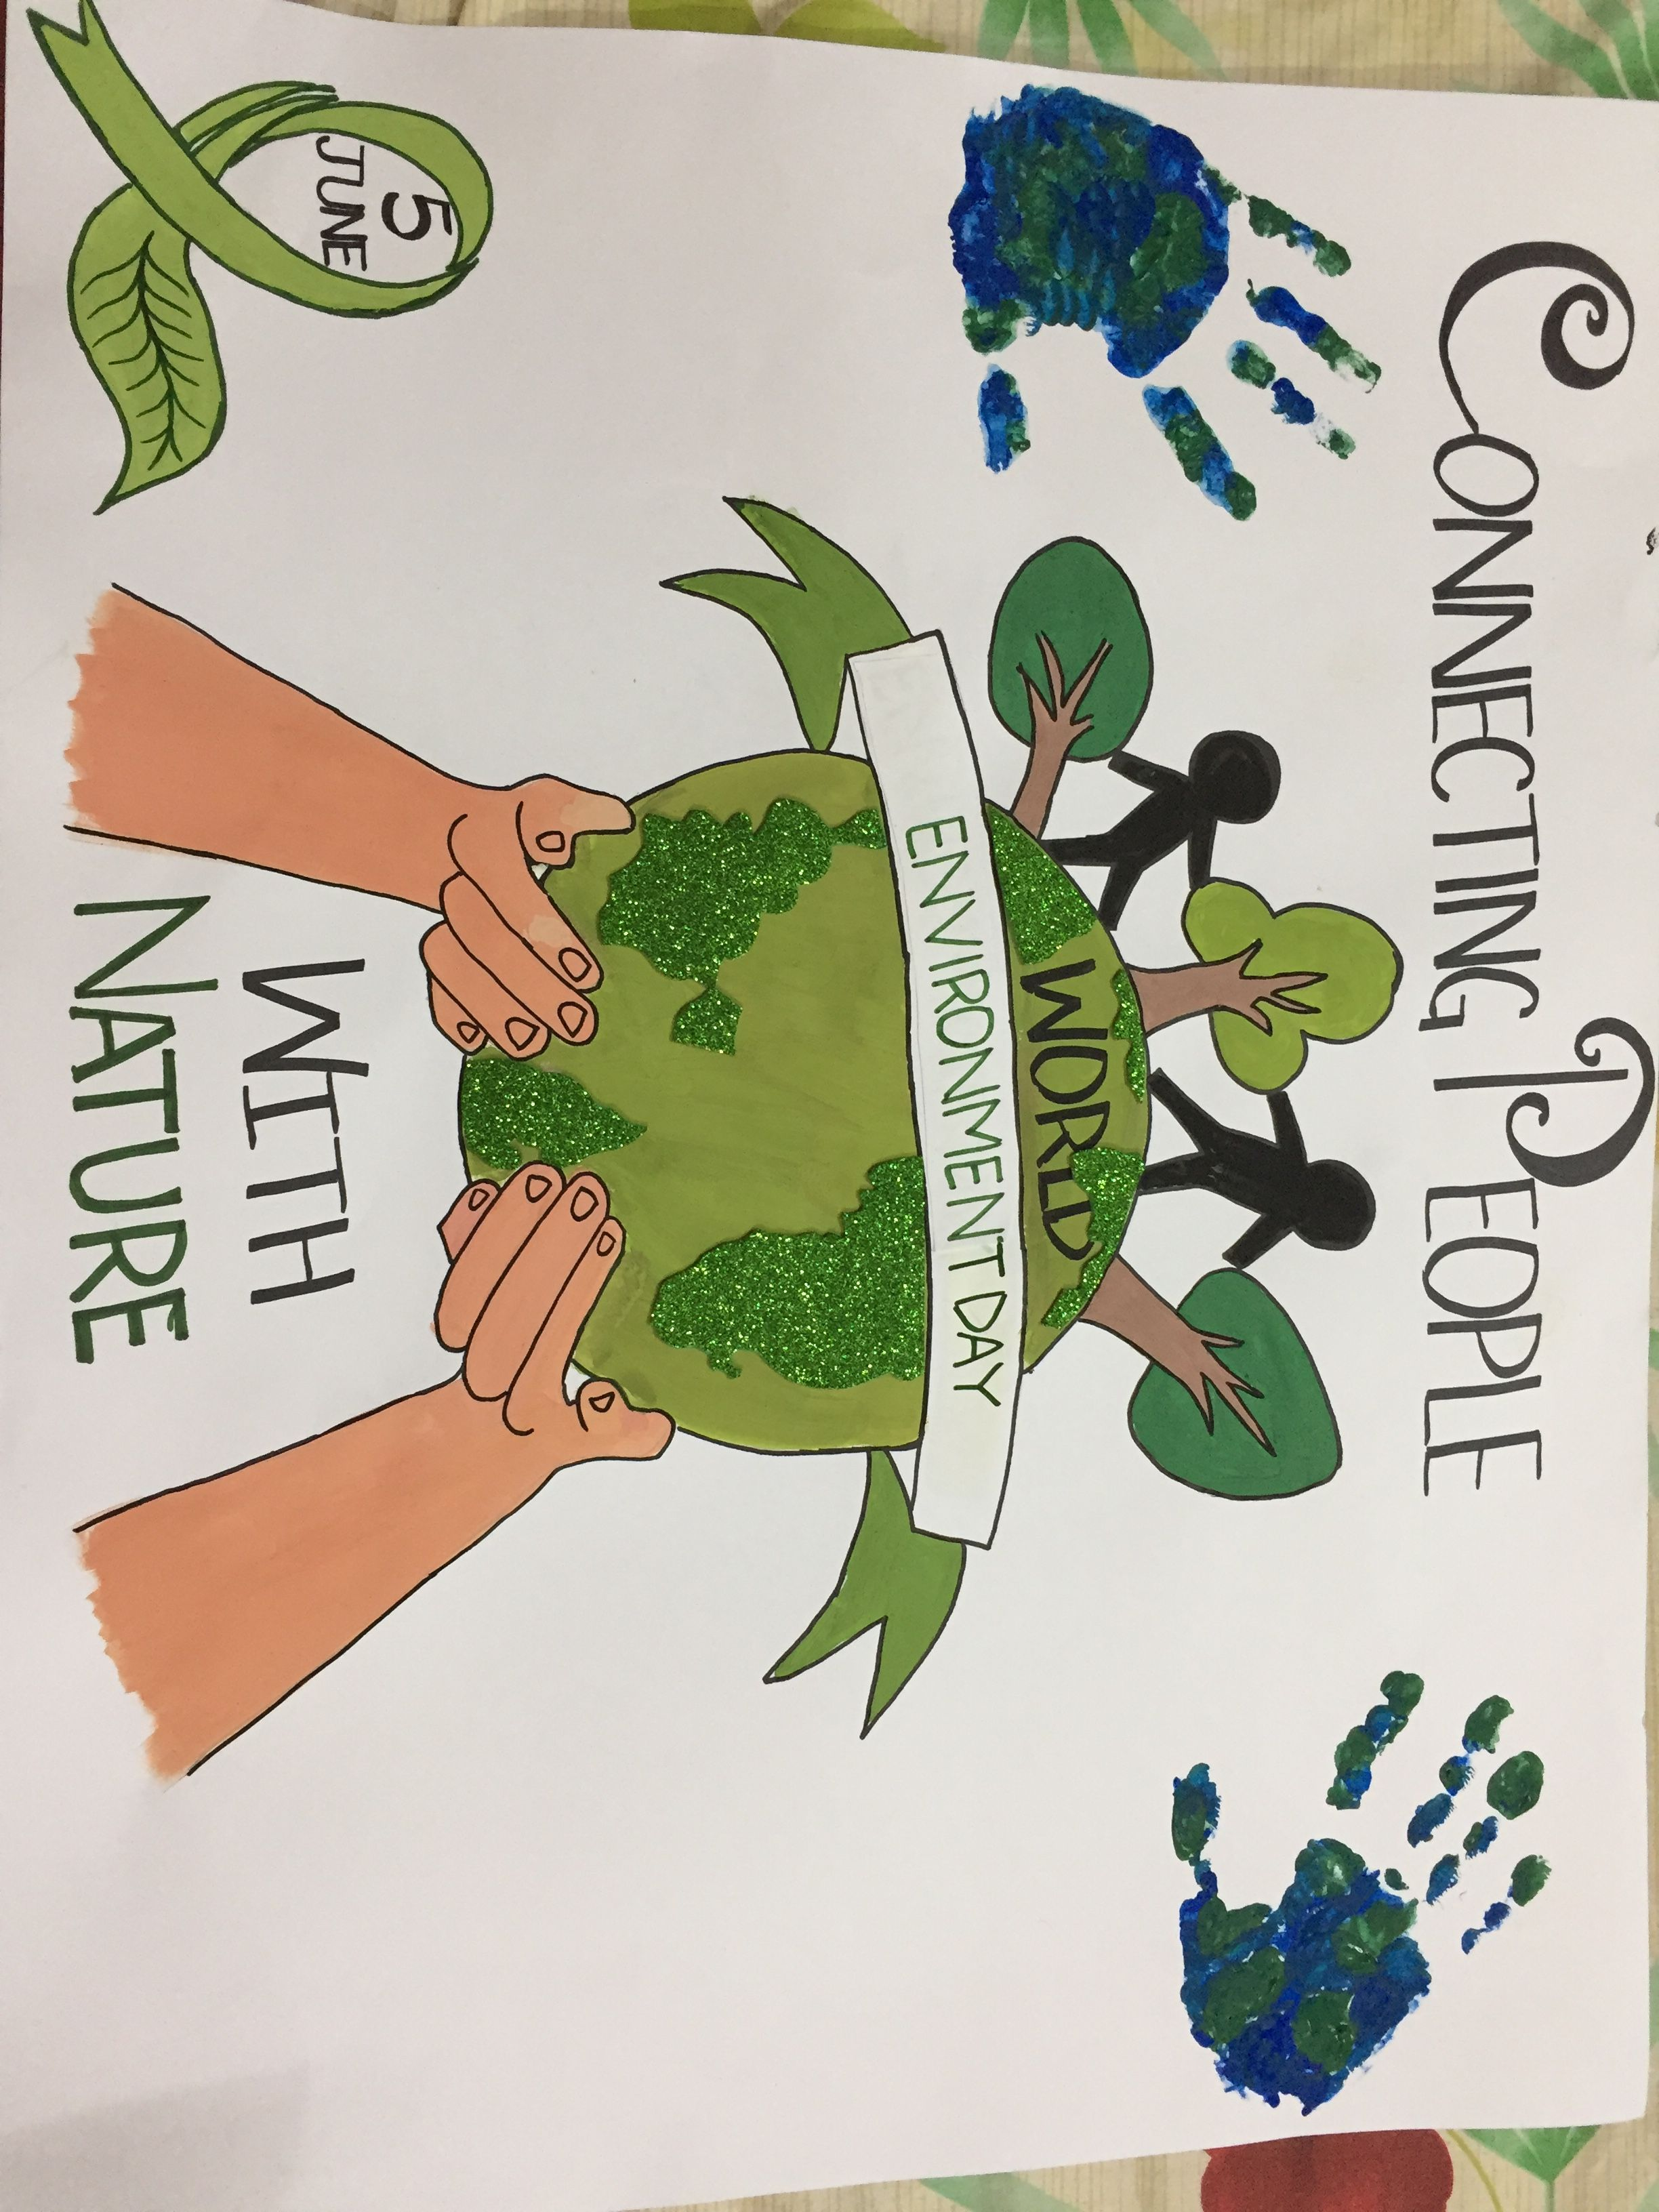 World Environment Day Connecting People With Nature Poster Making